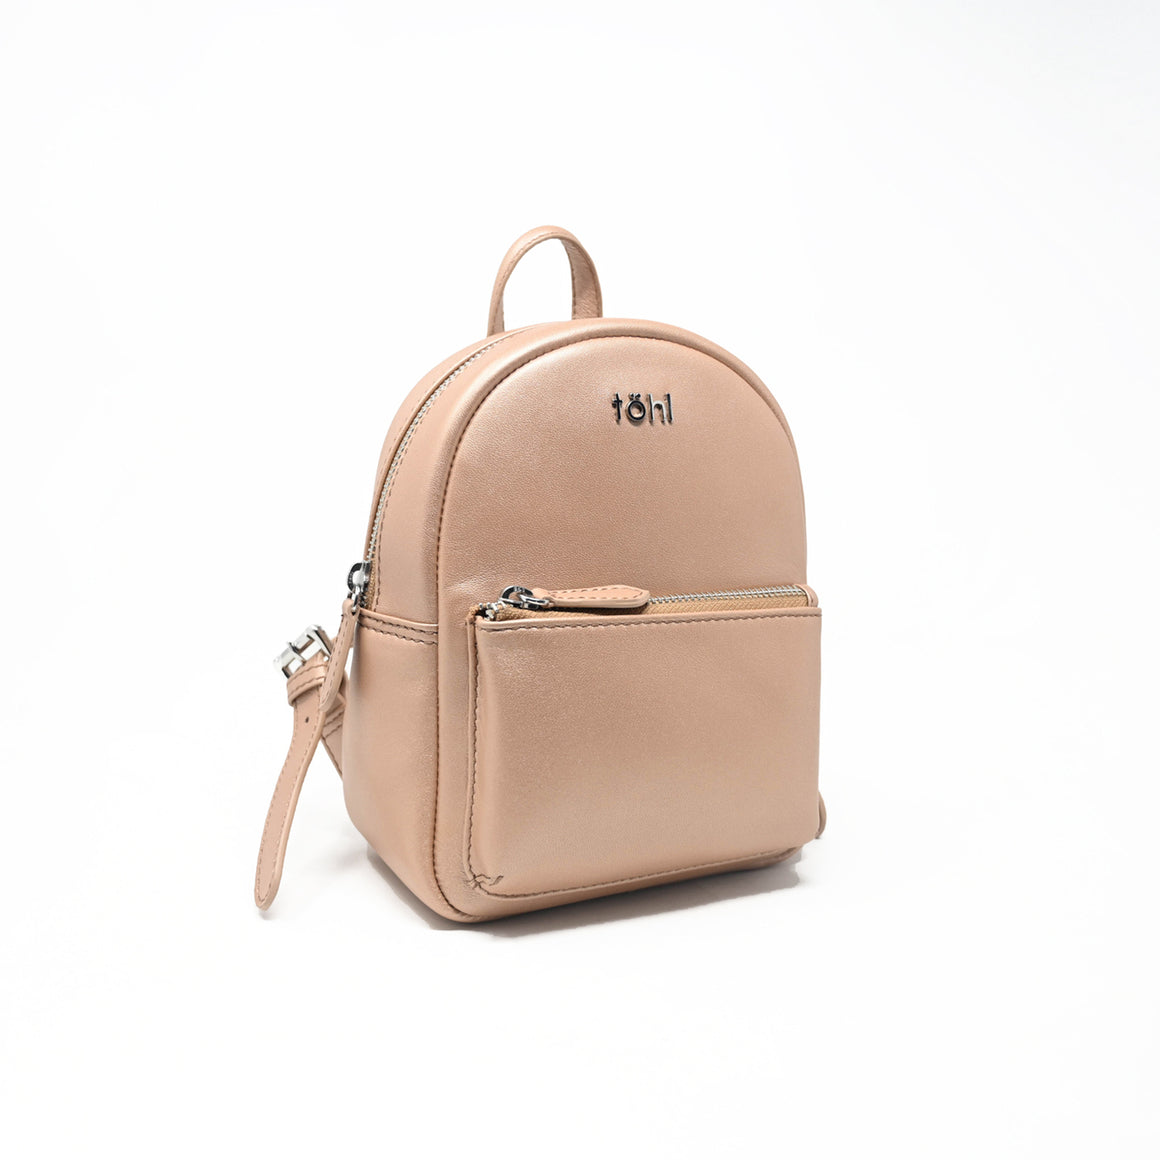 BP0017 - TOHL NEVERN WOMEN'S BACKPACK - NUDE